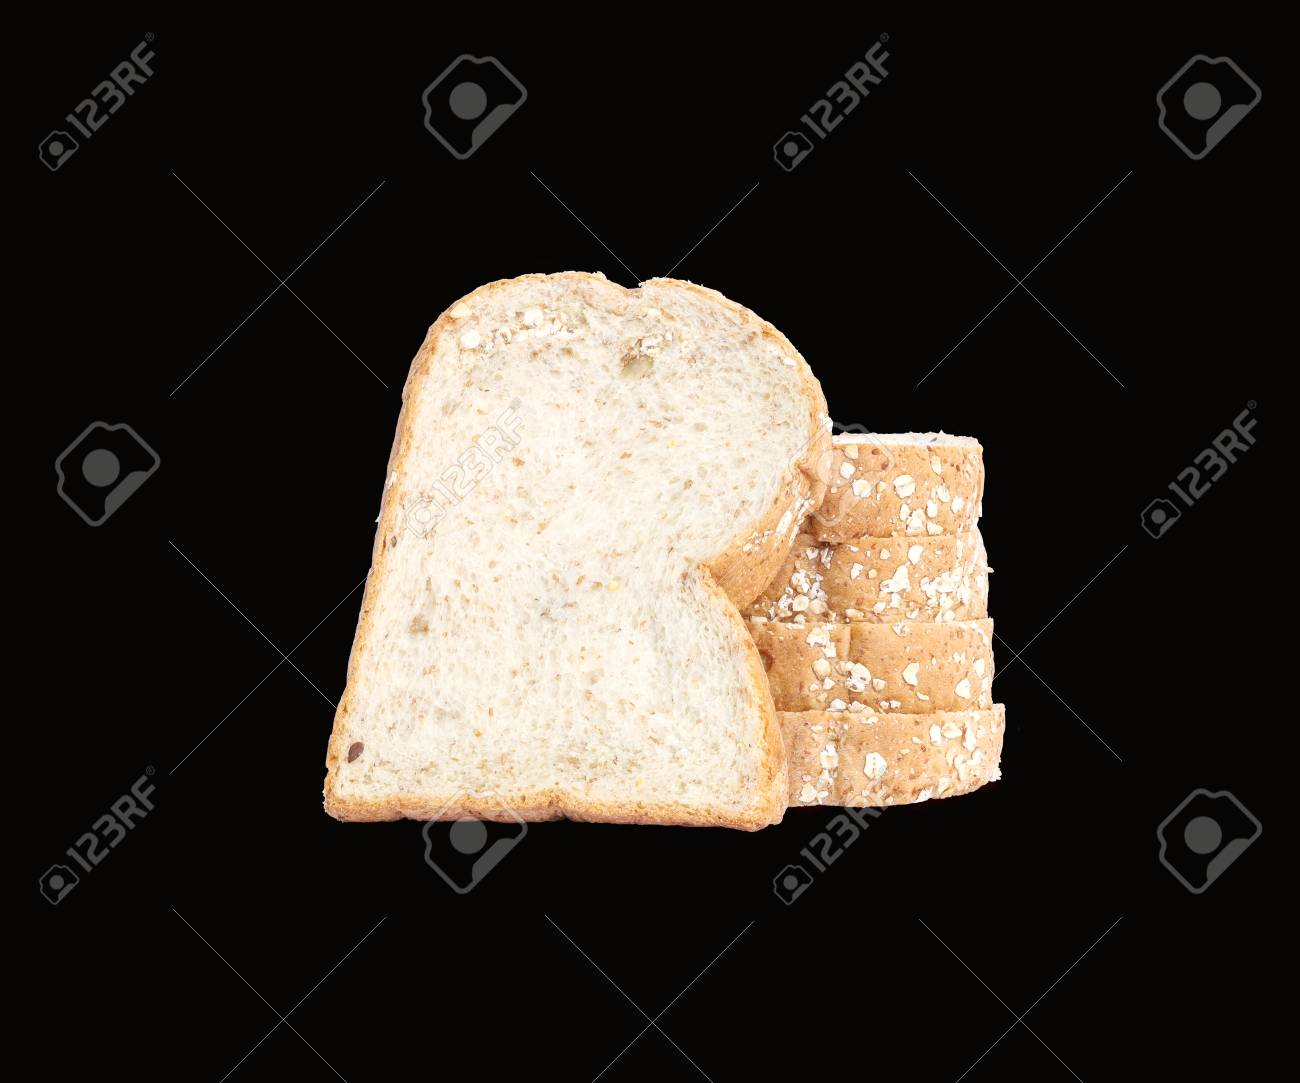 Closeup Pile Of Wheat Bread For Breakfast Isolated On Black Background